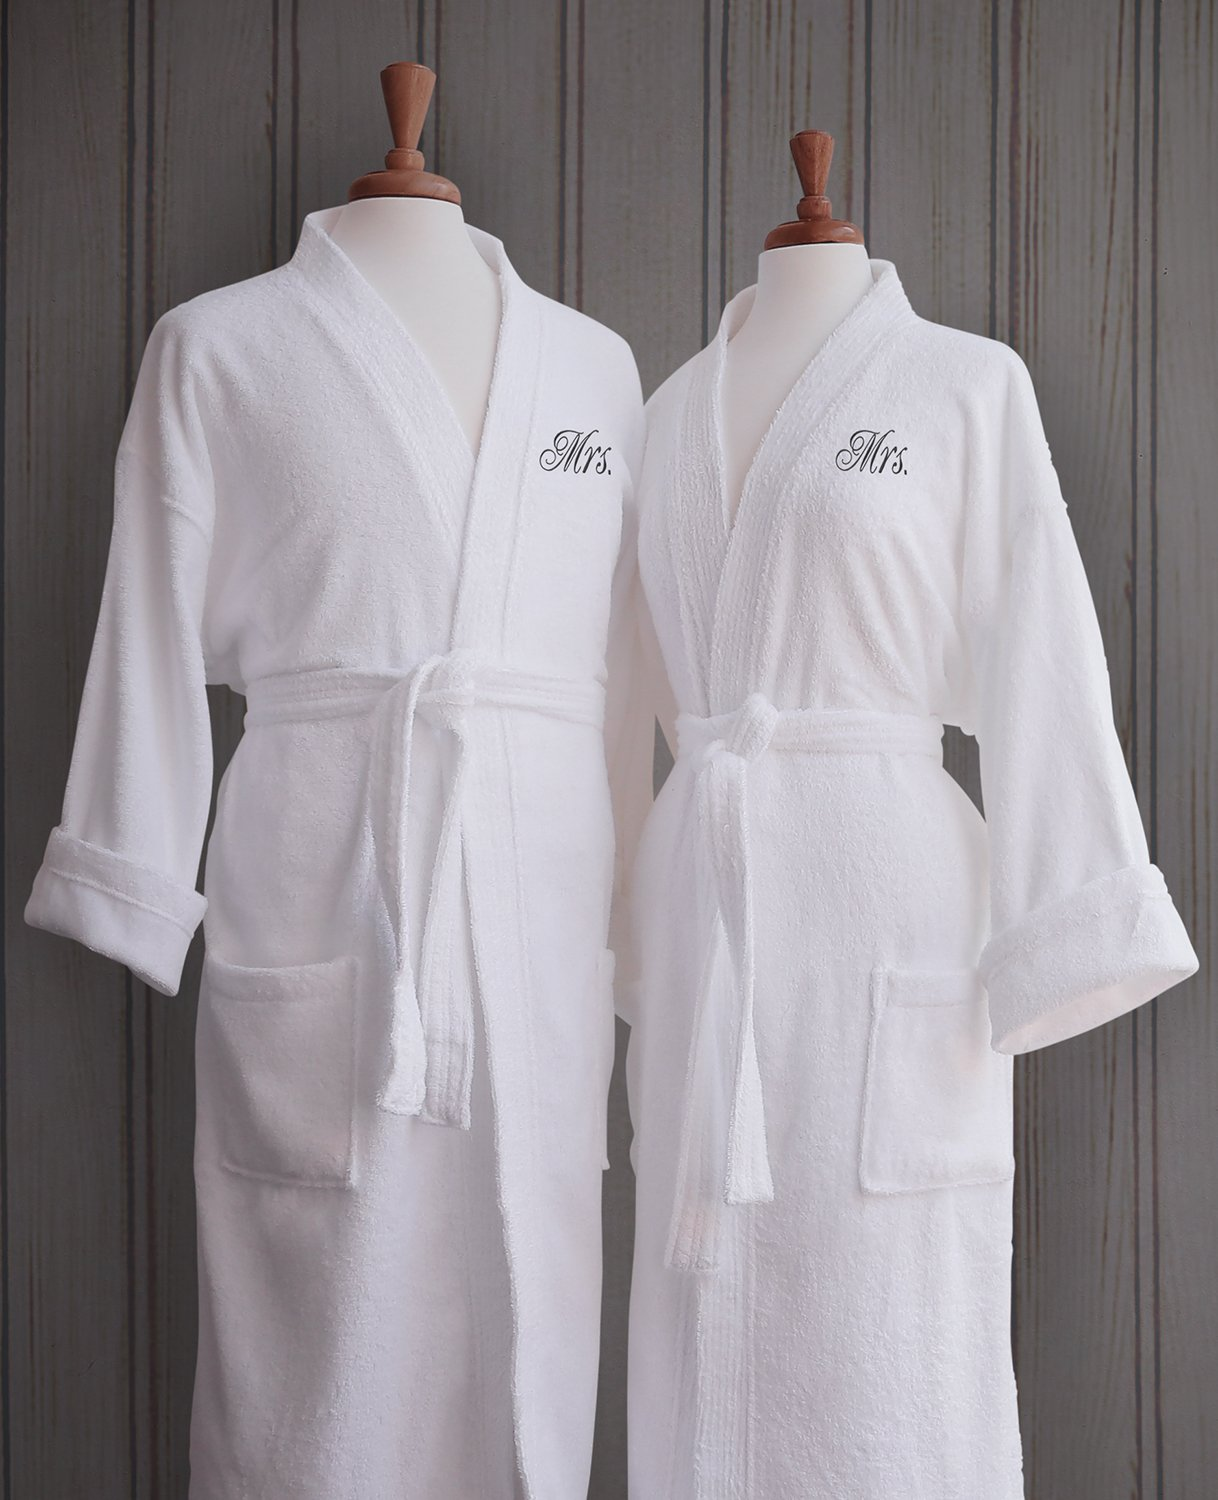 ad49162215 Luxor Linens - Terry Cloth Bathrobes - 100% Egyptian Cotton Mr.  Mrs.